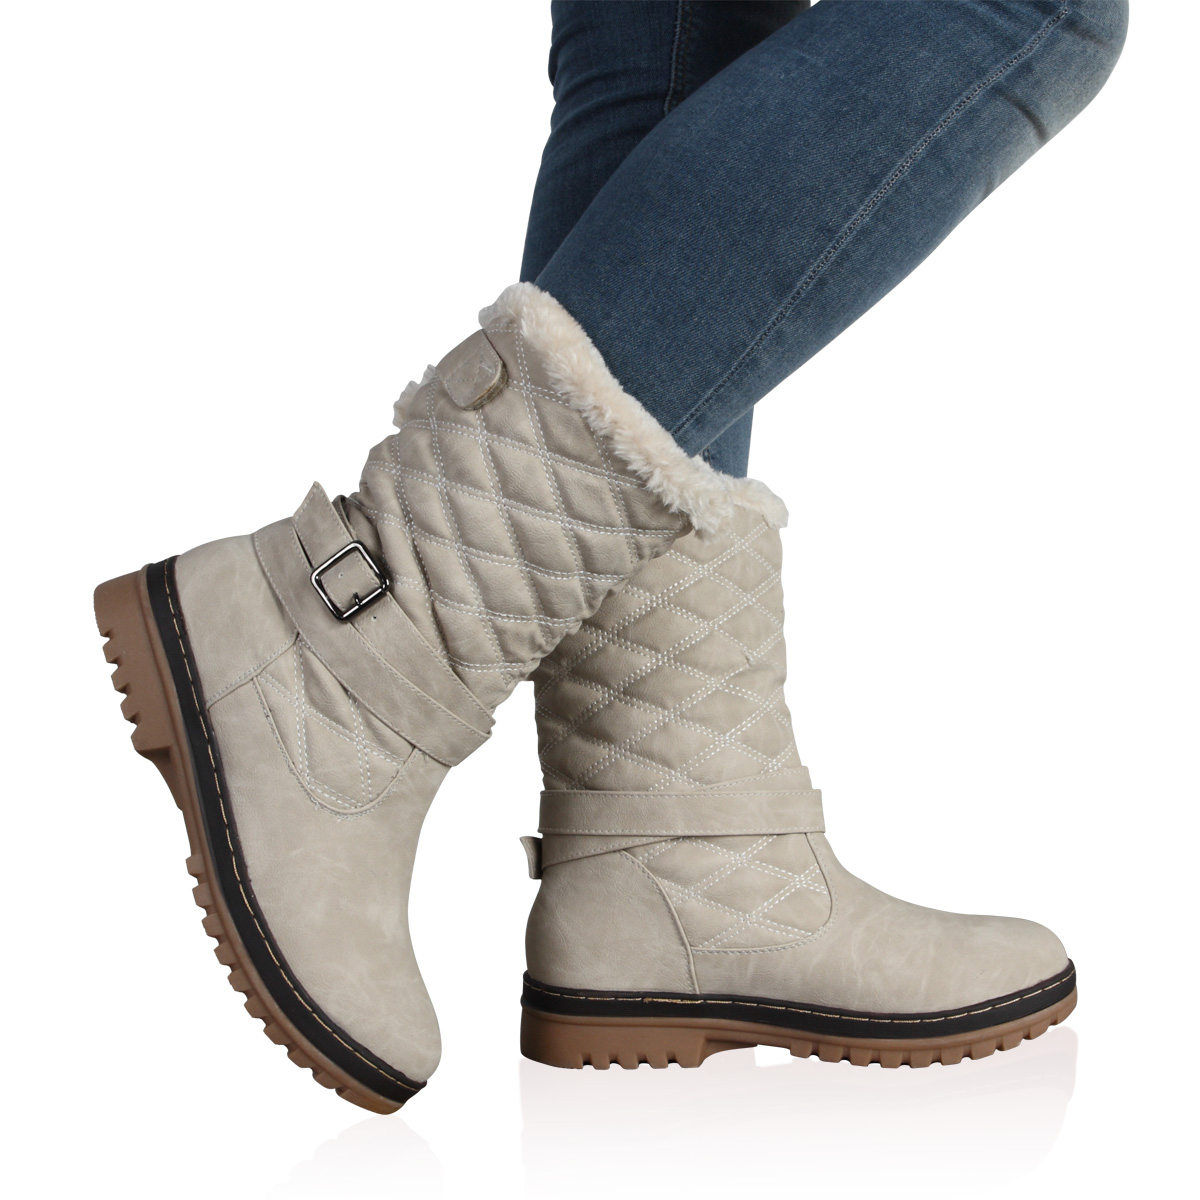 waterproof snow boots for women on sale , , ,